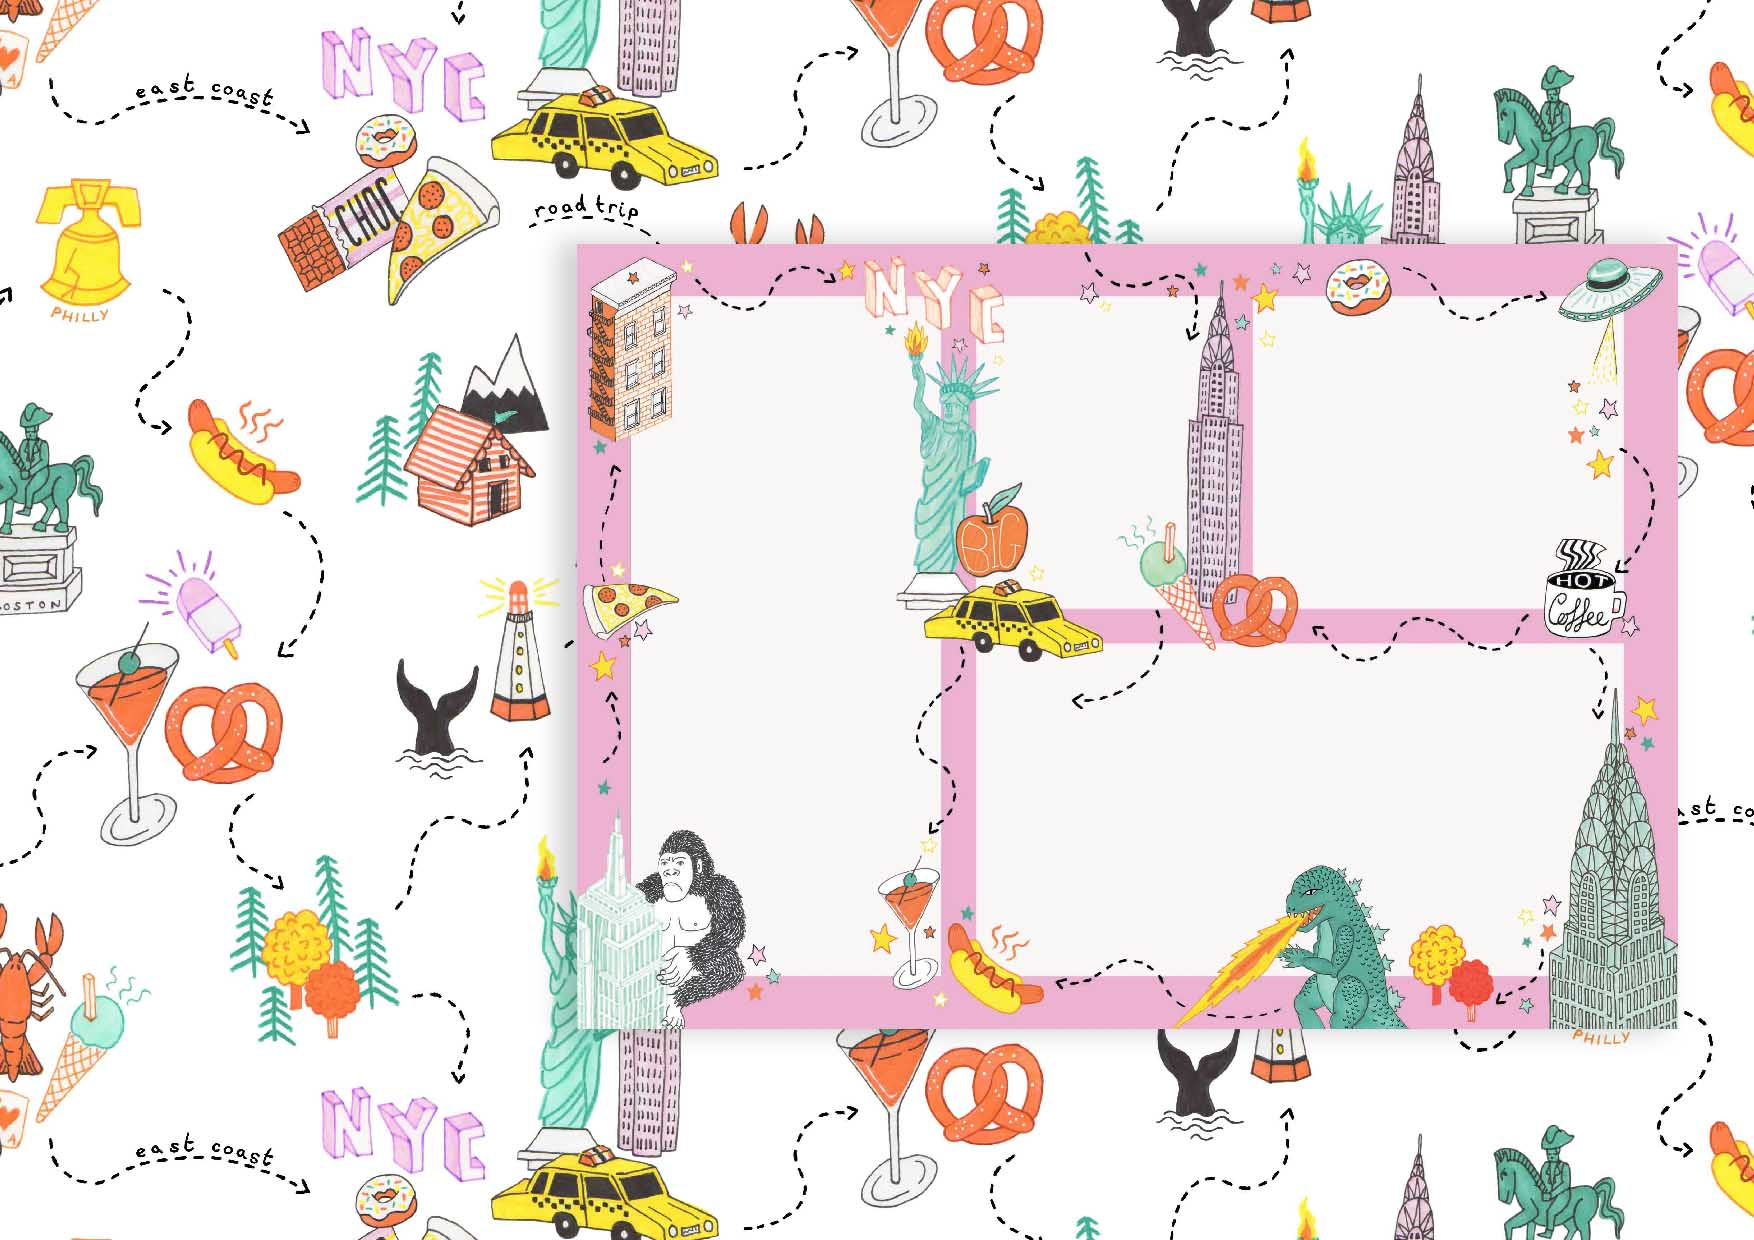 New-york-Pattern-illustrated-by-Jacqueline-Colley2.jpg